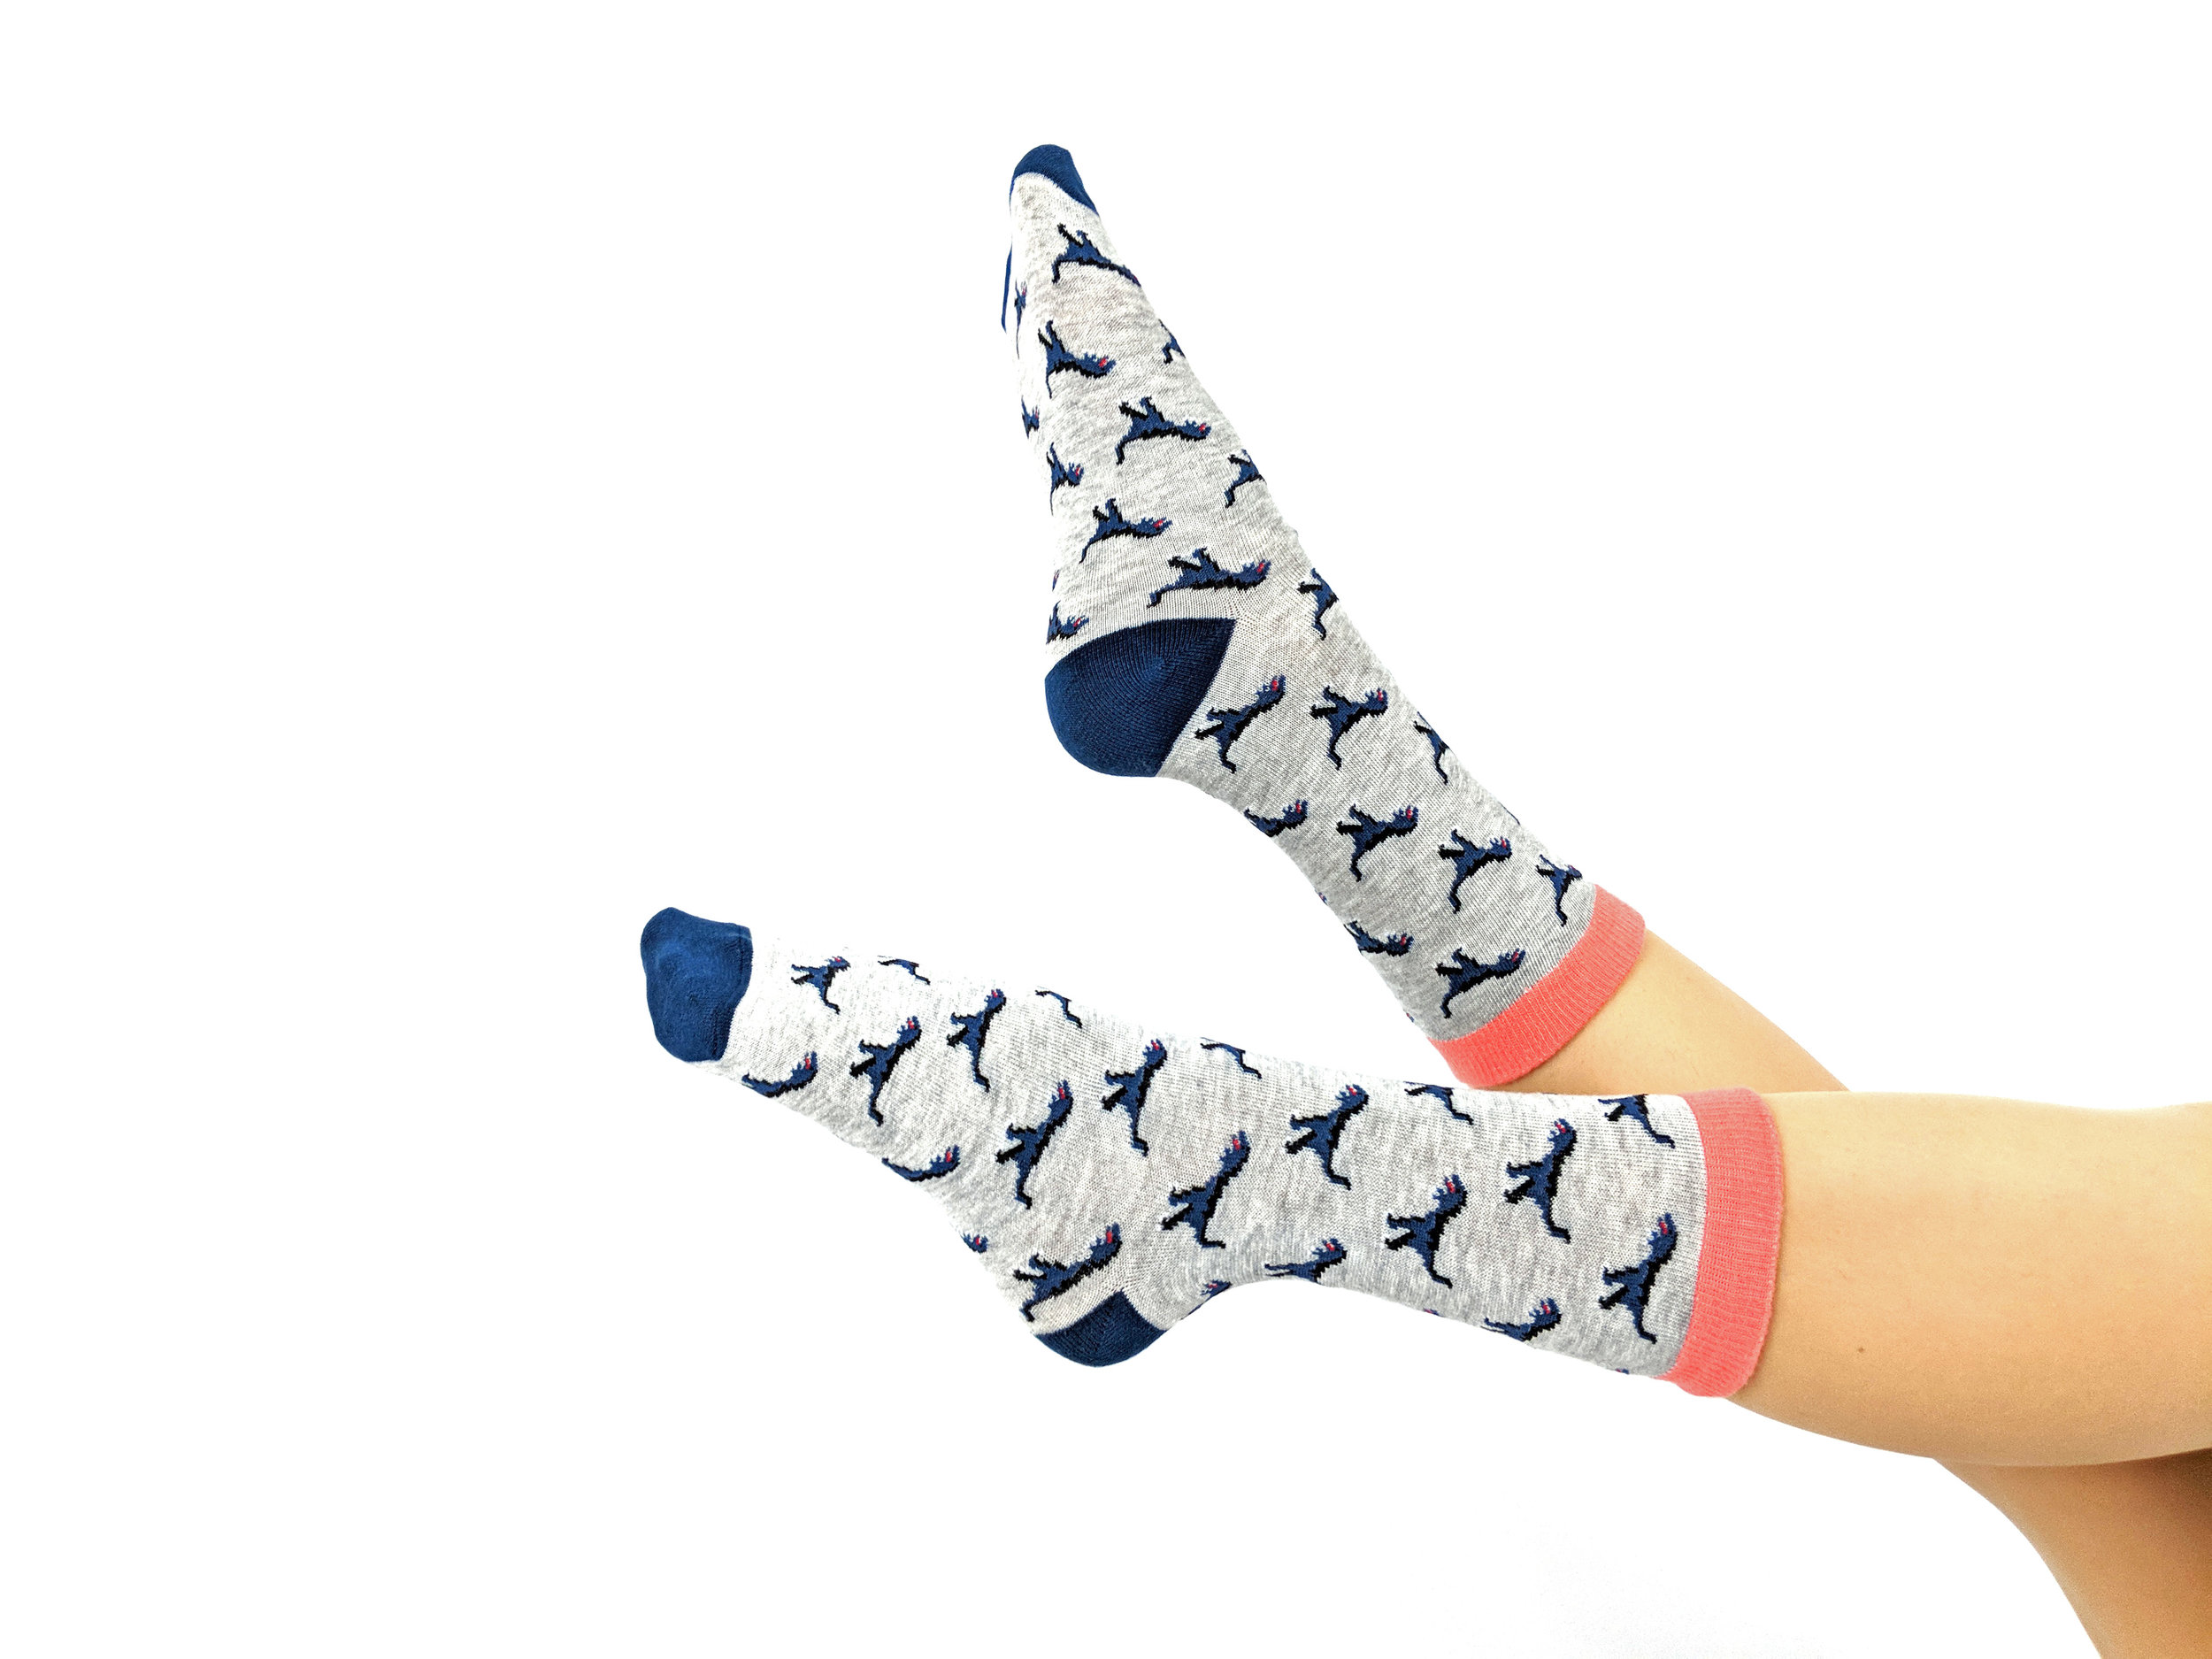 One of Say Possible's most in-demand women's style is SockASaurus, featuring a fierce T-rex (but adorable somehow...)